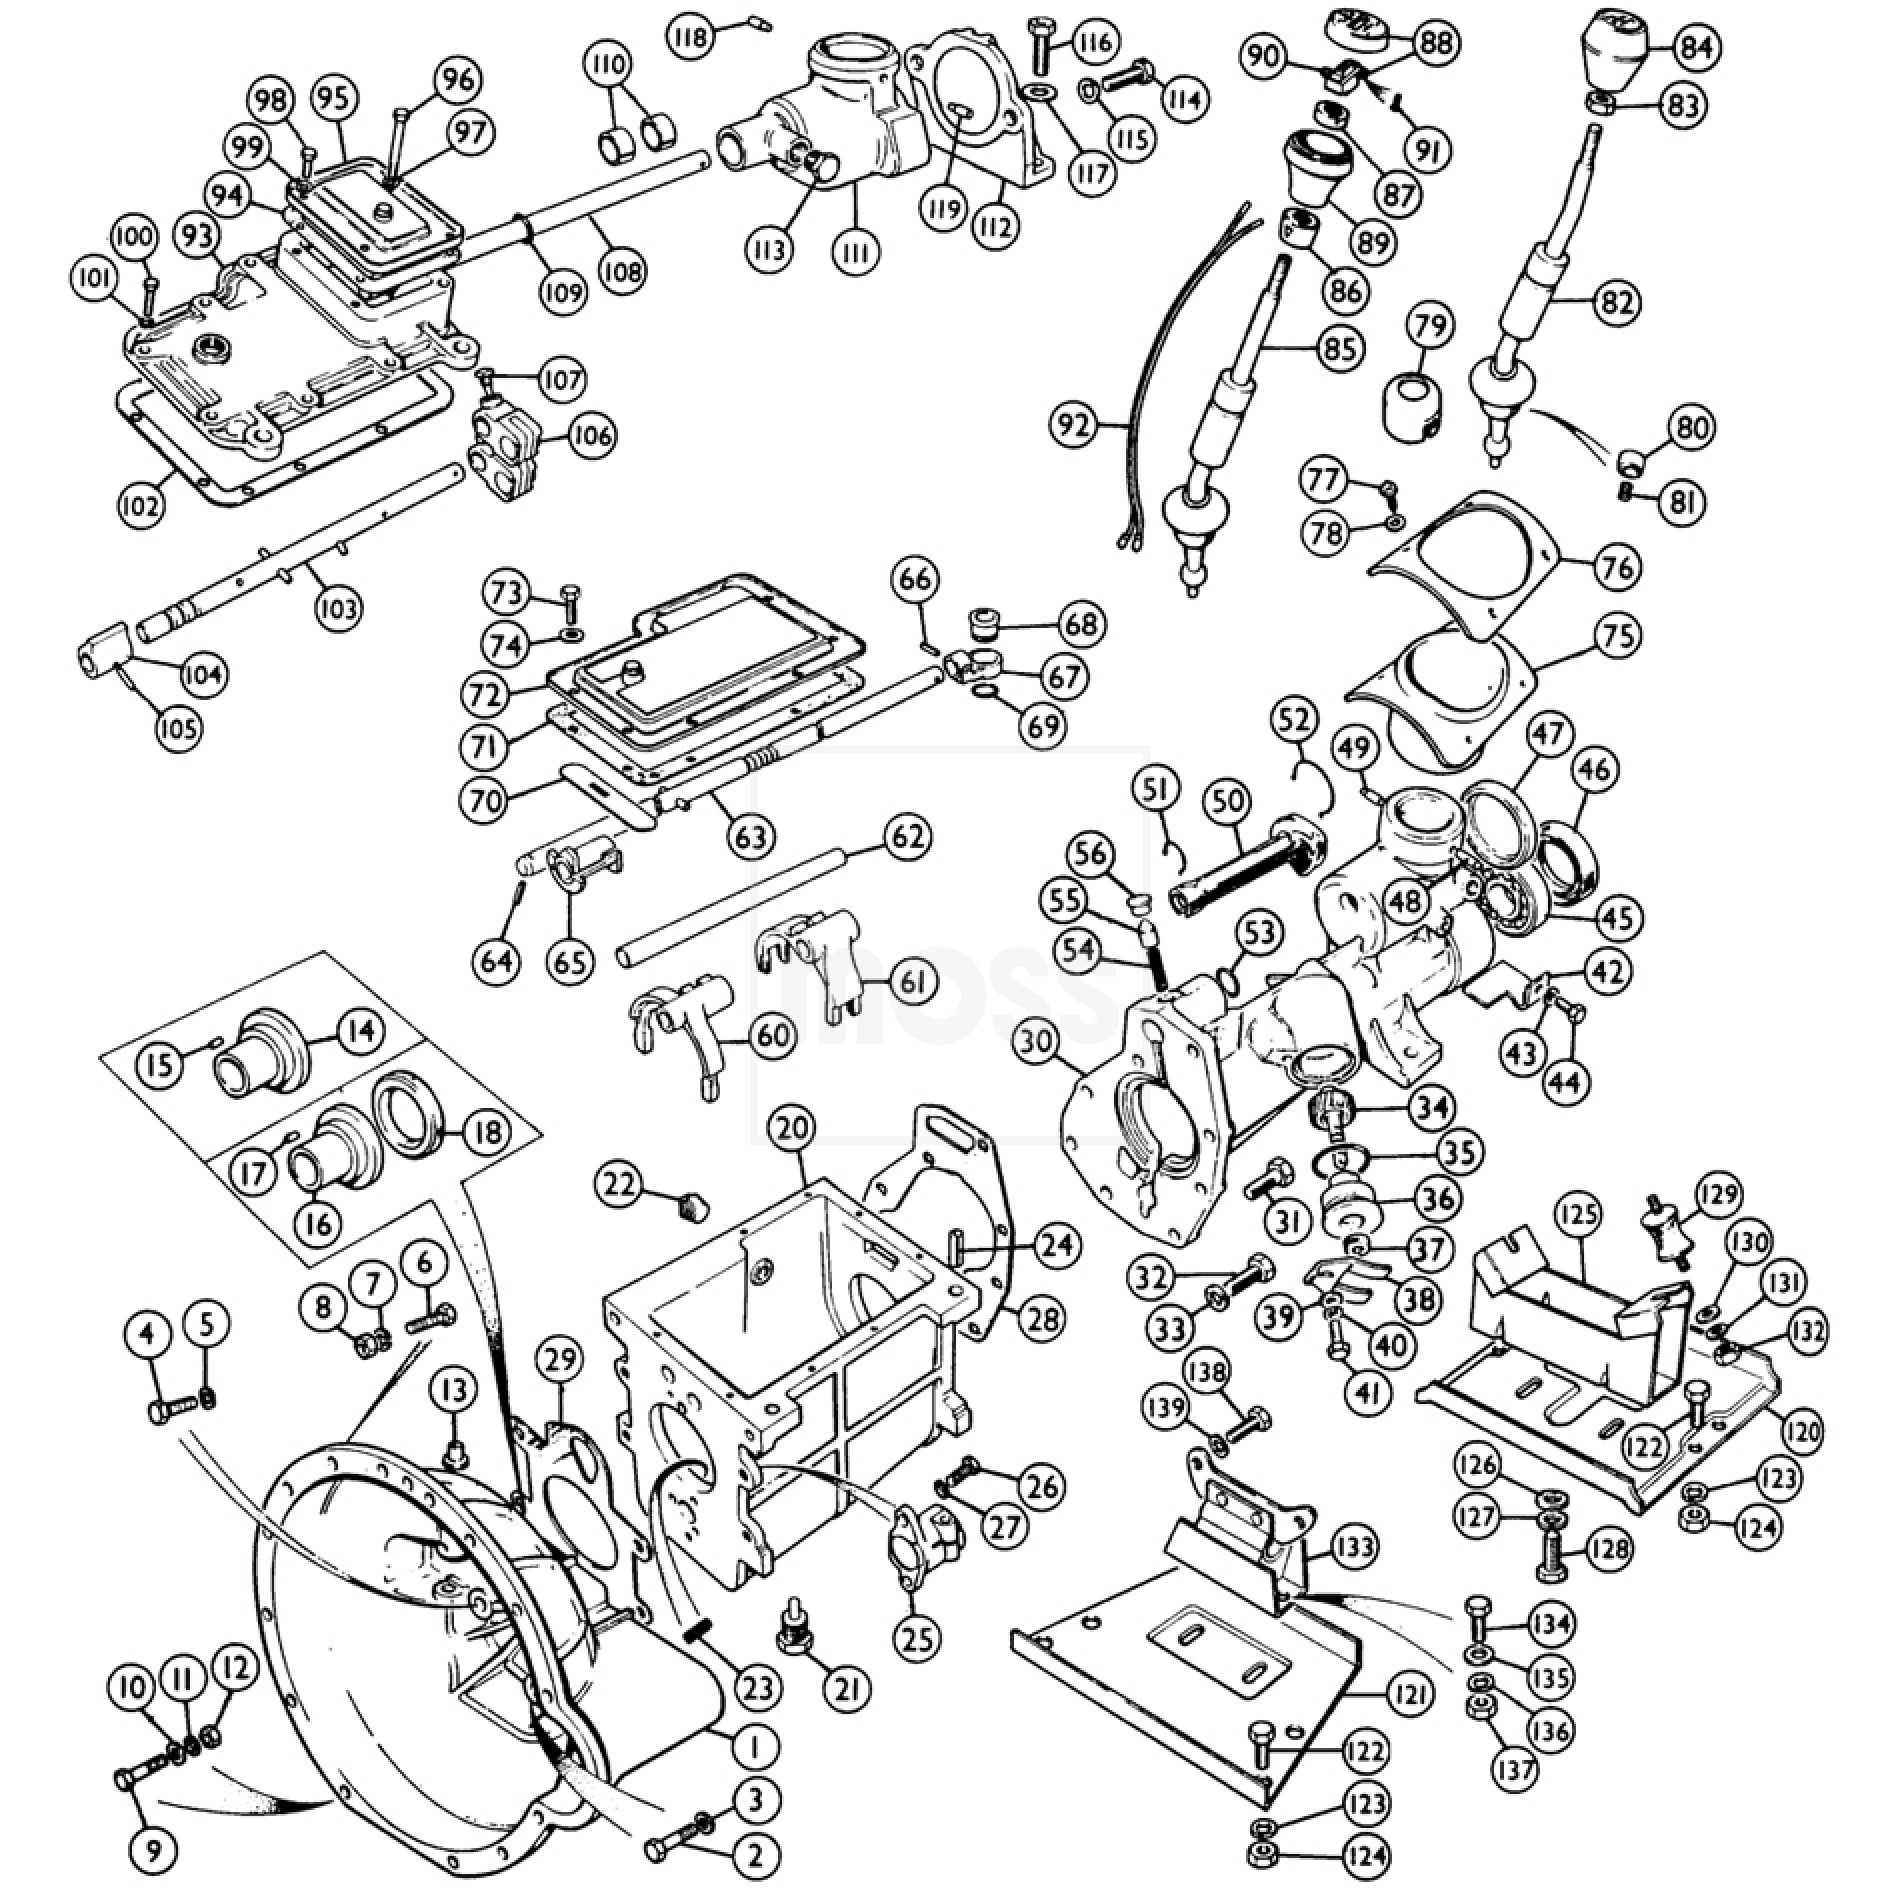 2002 jaguar x type 3.0 engine diagram